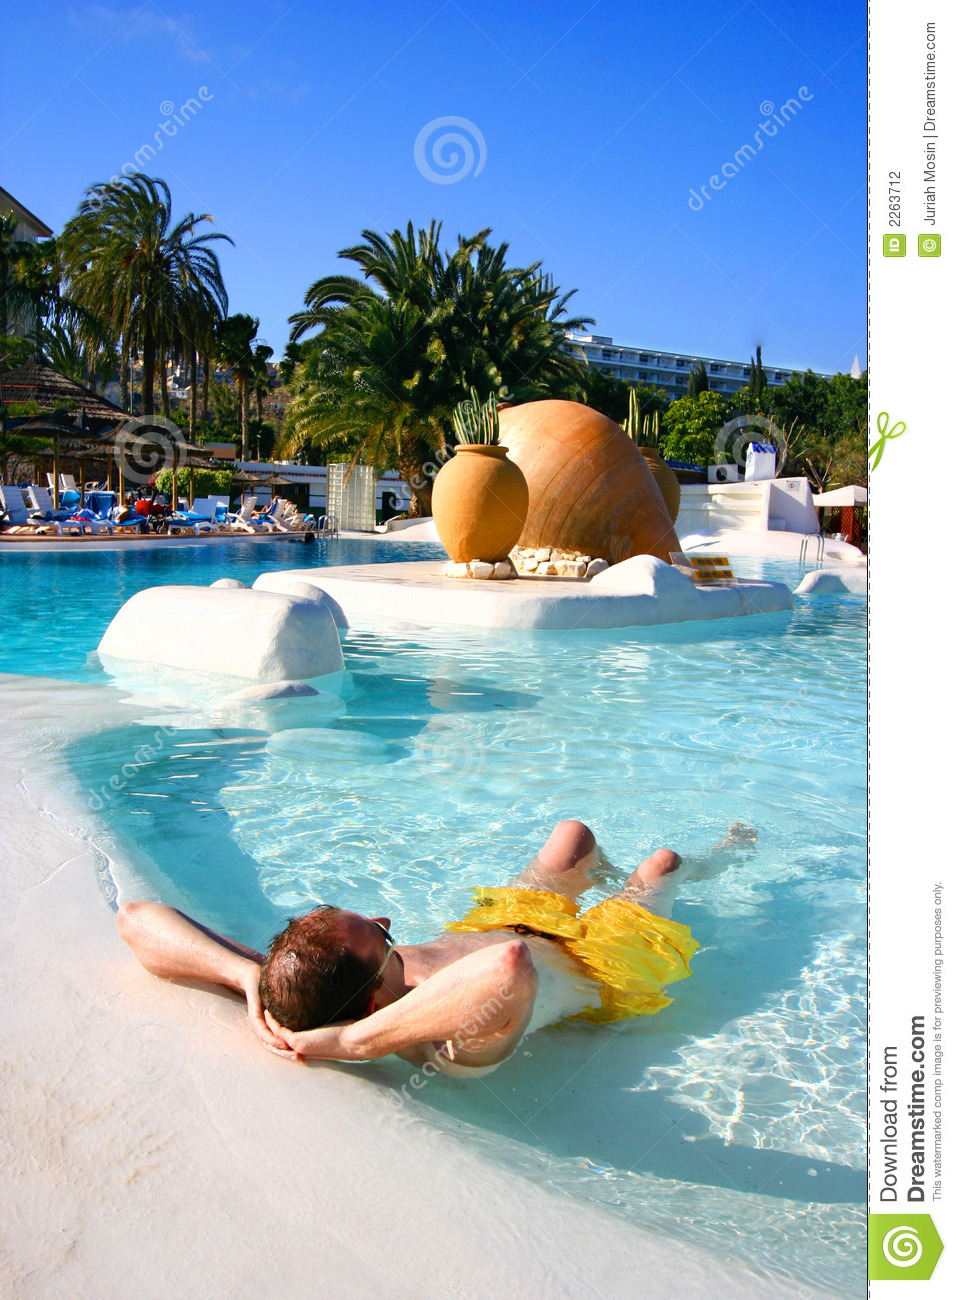 Man In Shallow Pool Stock Photography Image 2263712